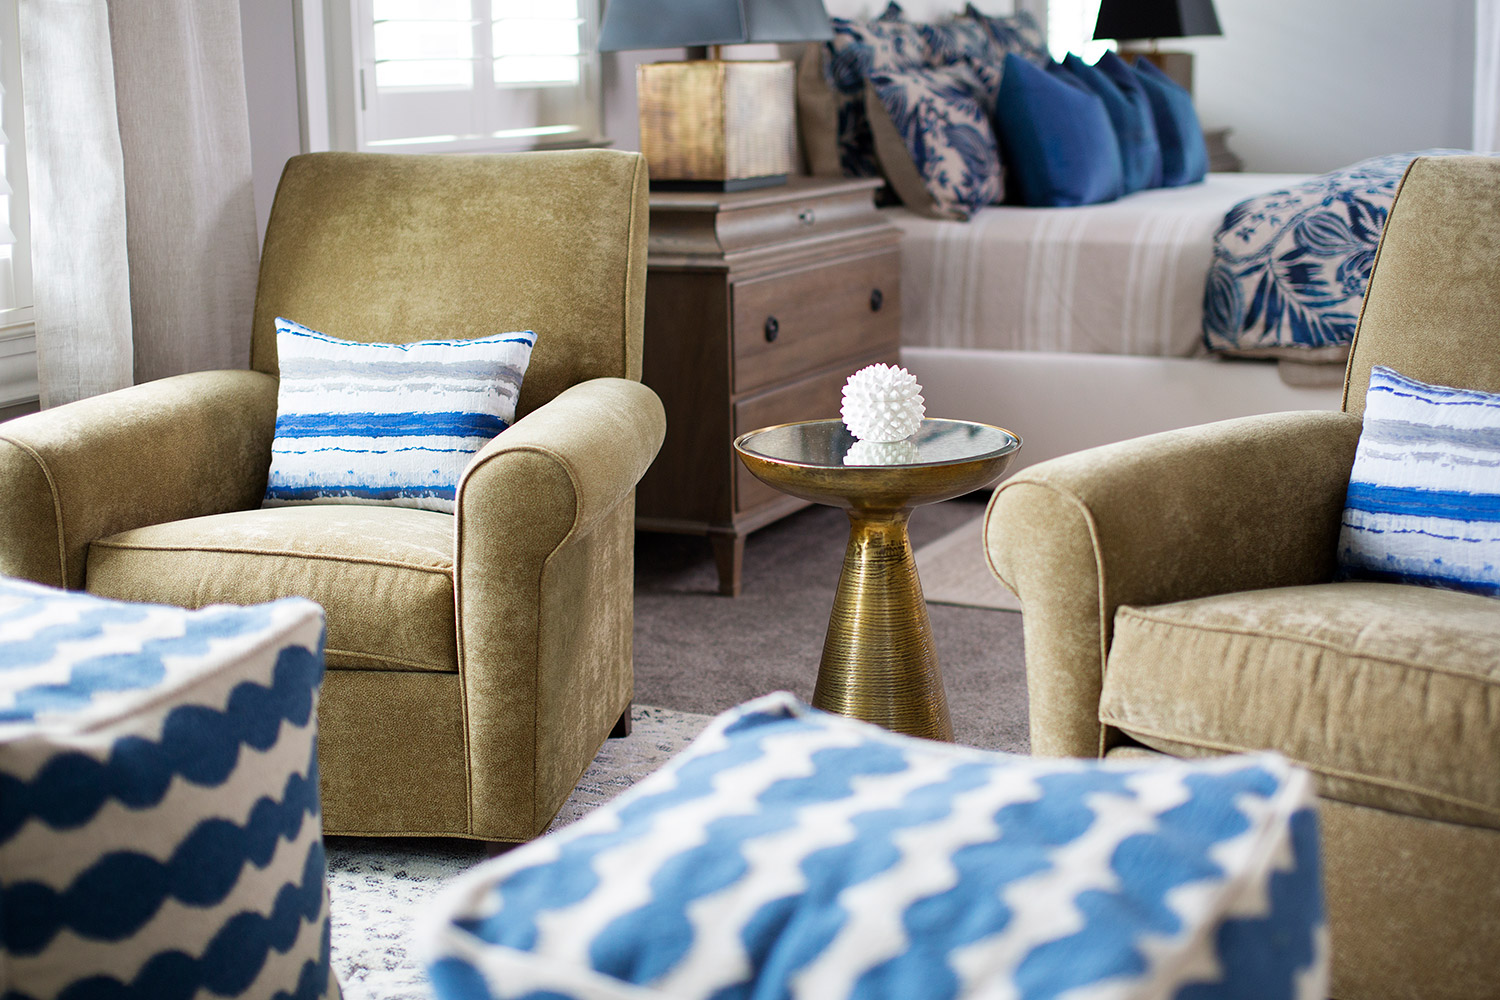 Upholstered chairs in sitting area in transitional master bedroom